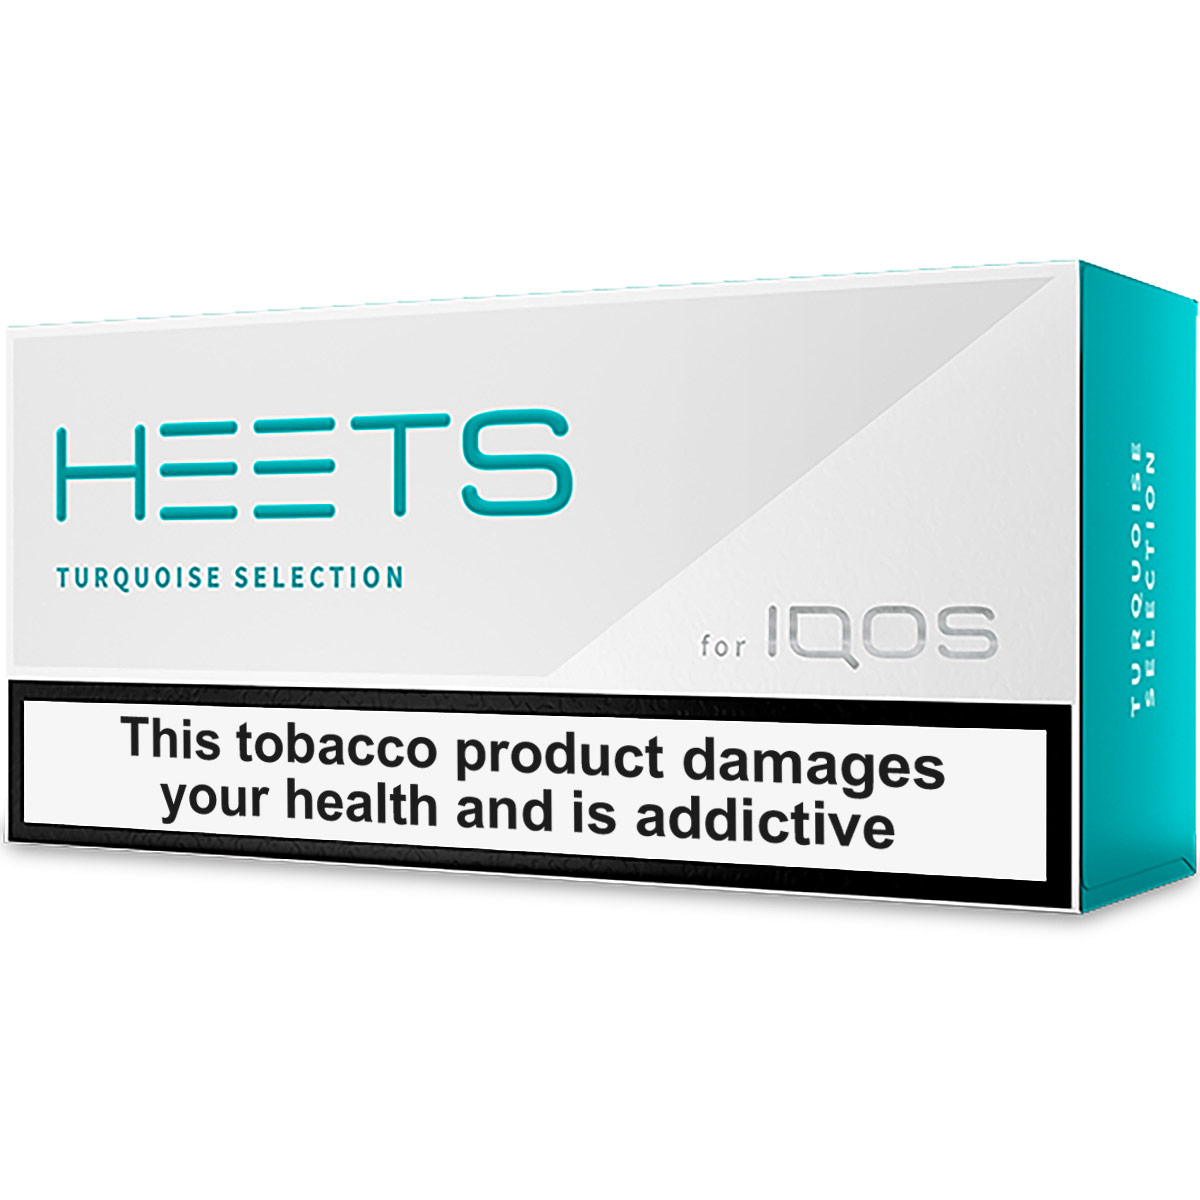 IQOS HEETS Turquoise Selection / Label